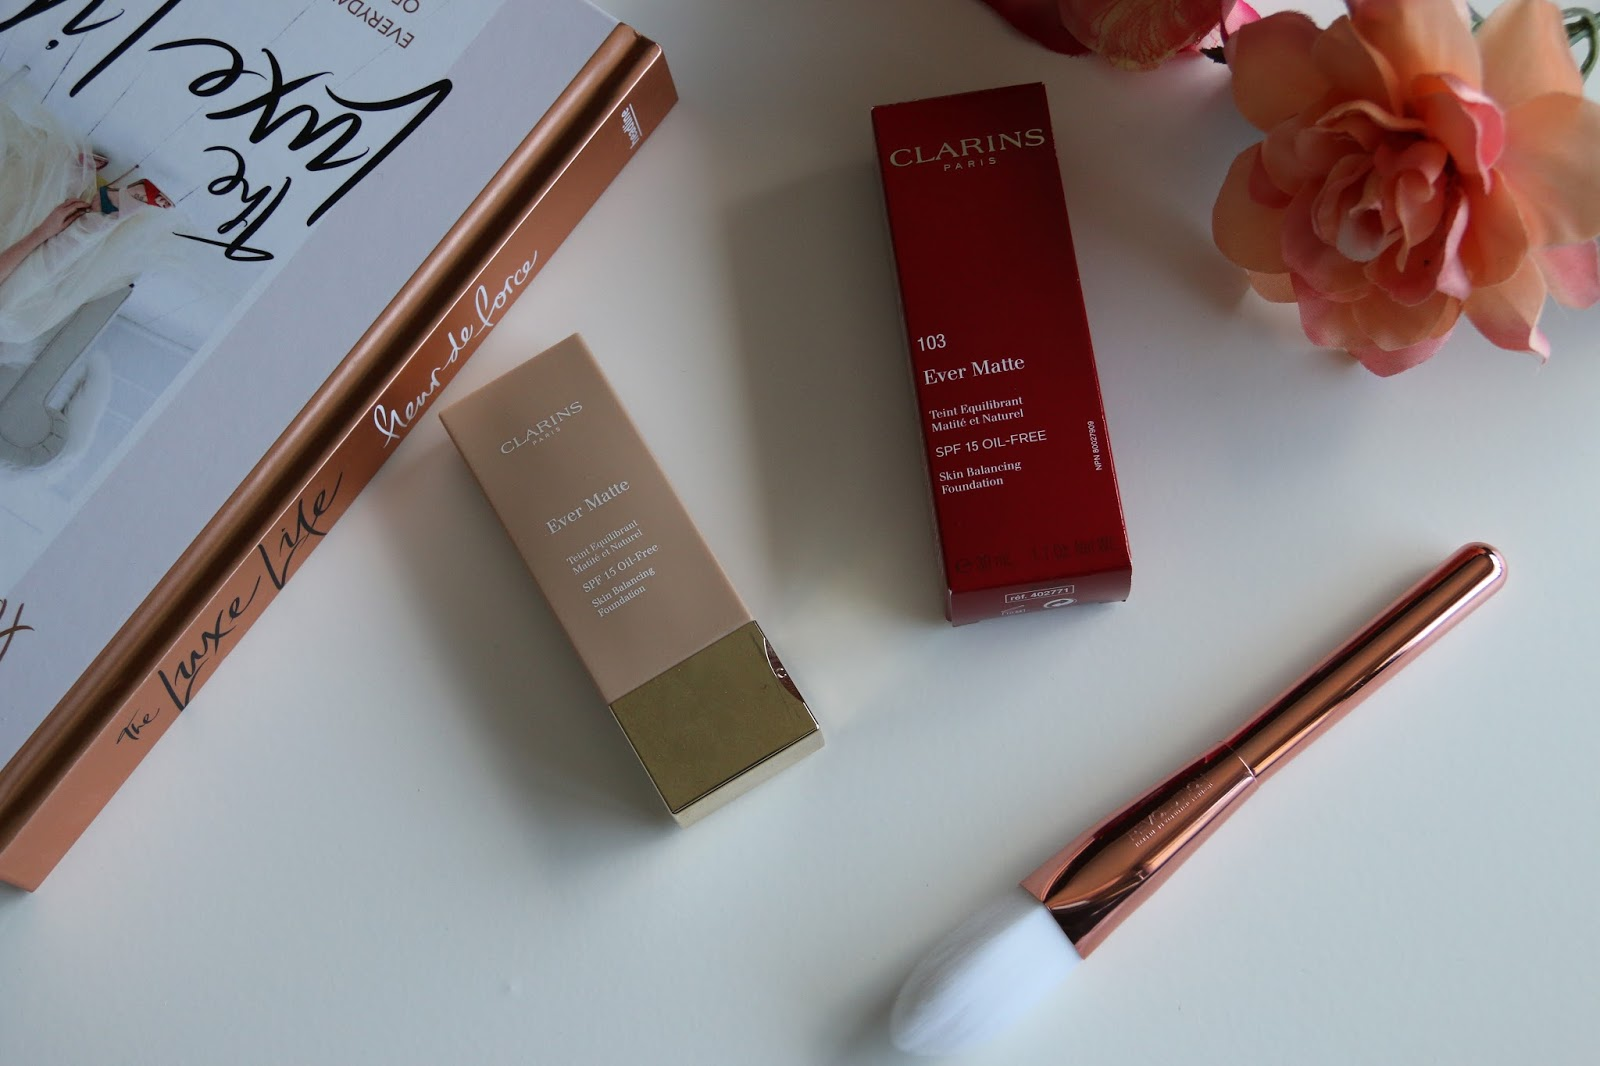 Clarins Ever Matte Foundation in 103 Ivory for Oily Skin Review Image